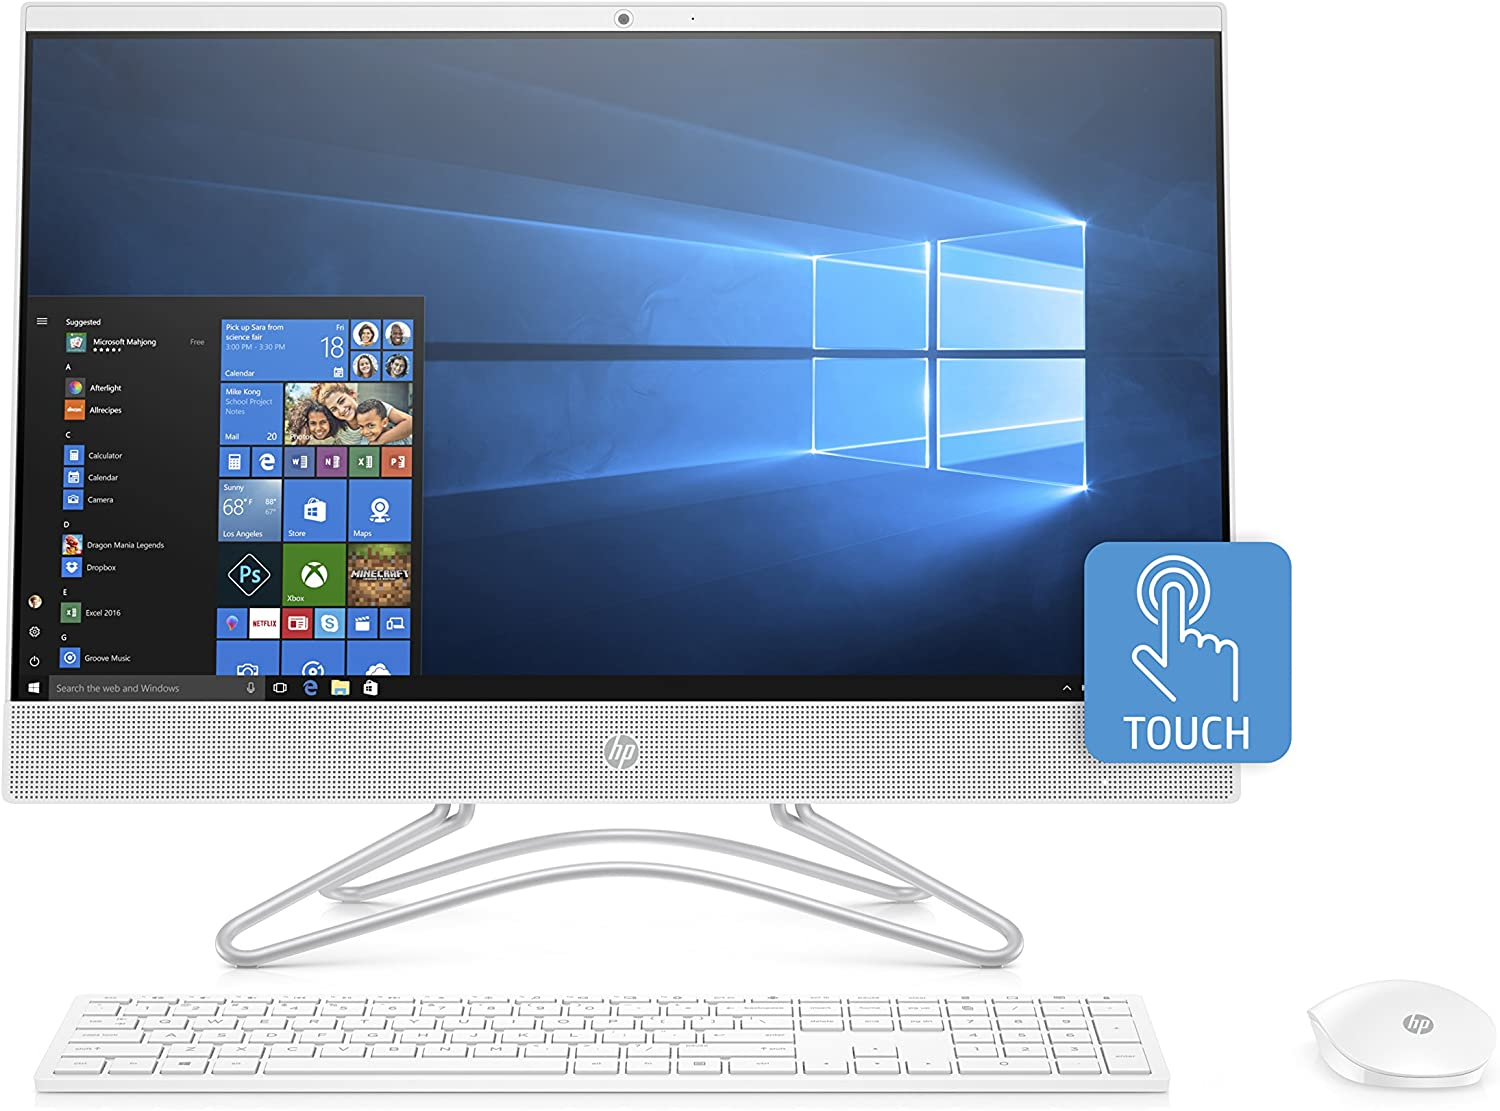 HP 24-Inch All-in-One Computer, Intel Core i5-8250U, 12GB RAM, 1TB Hard Drive, Windows 10 (24-f0060, White)